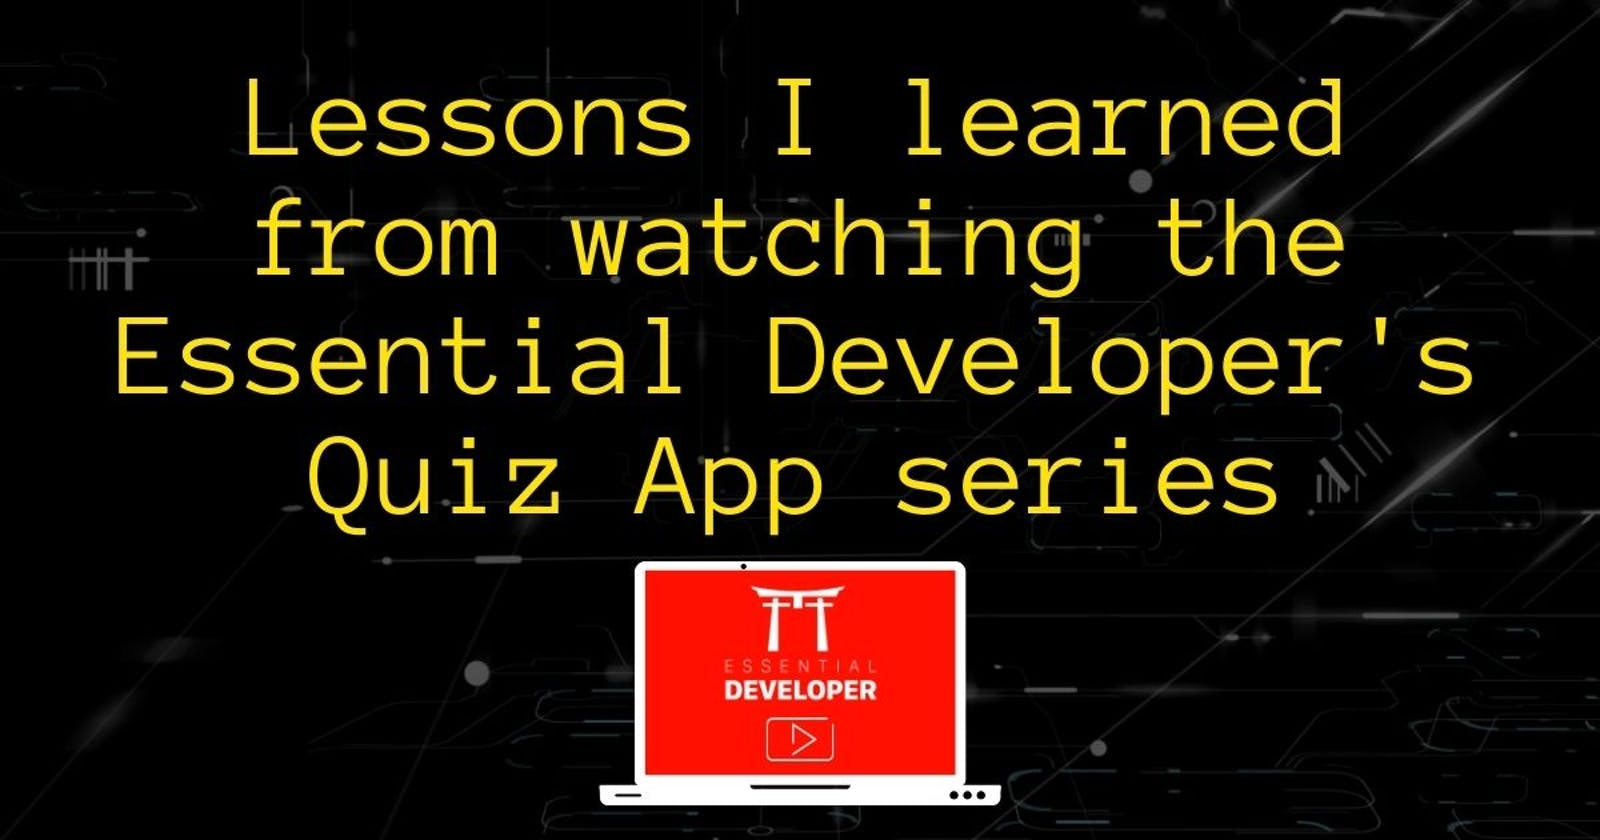 Lessons I learned from watching the Essential Developer's Quiz App series